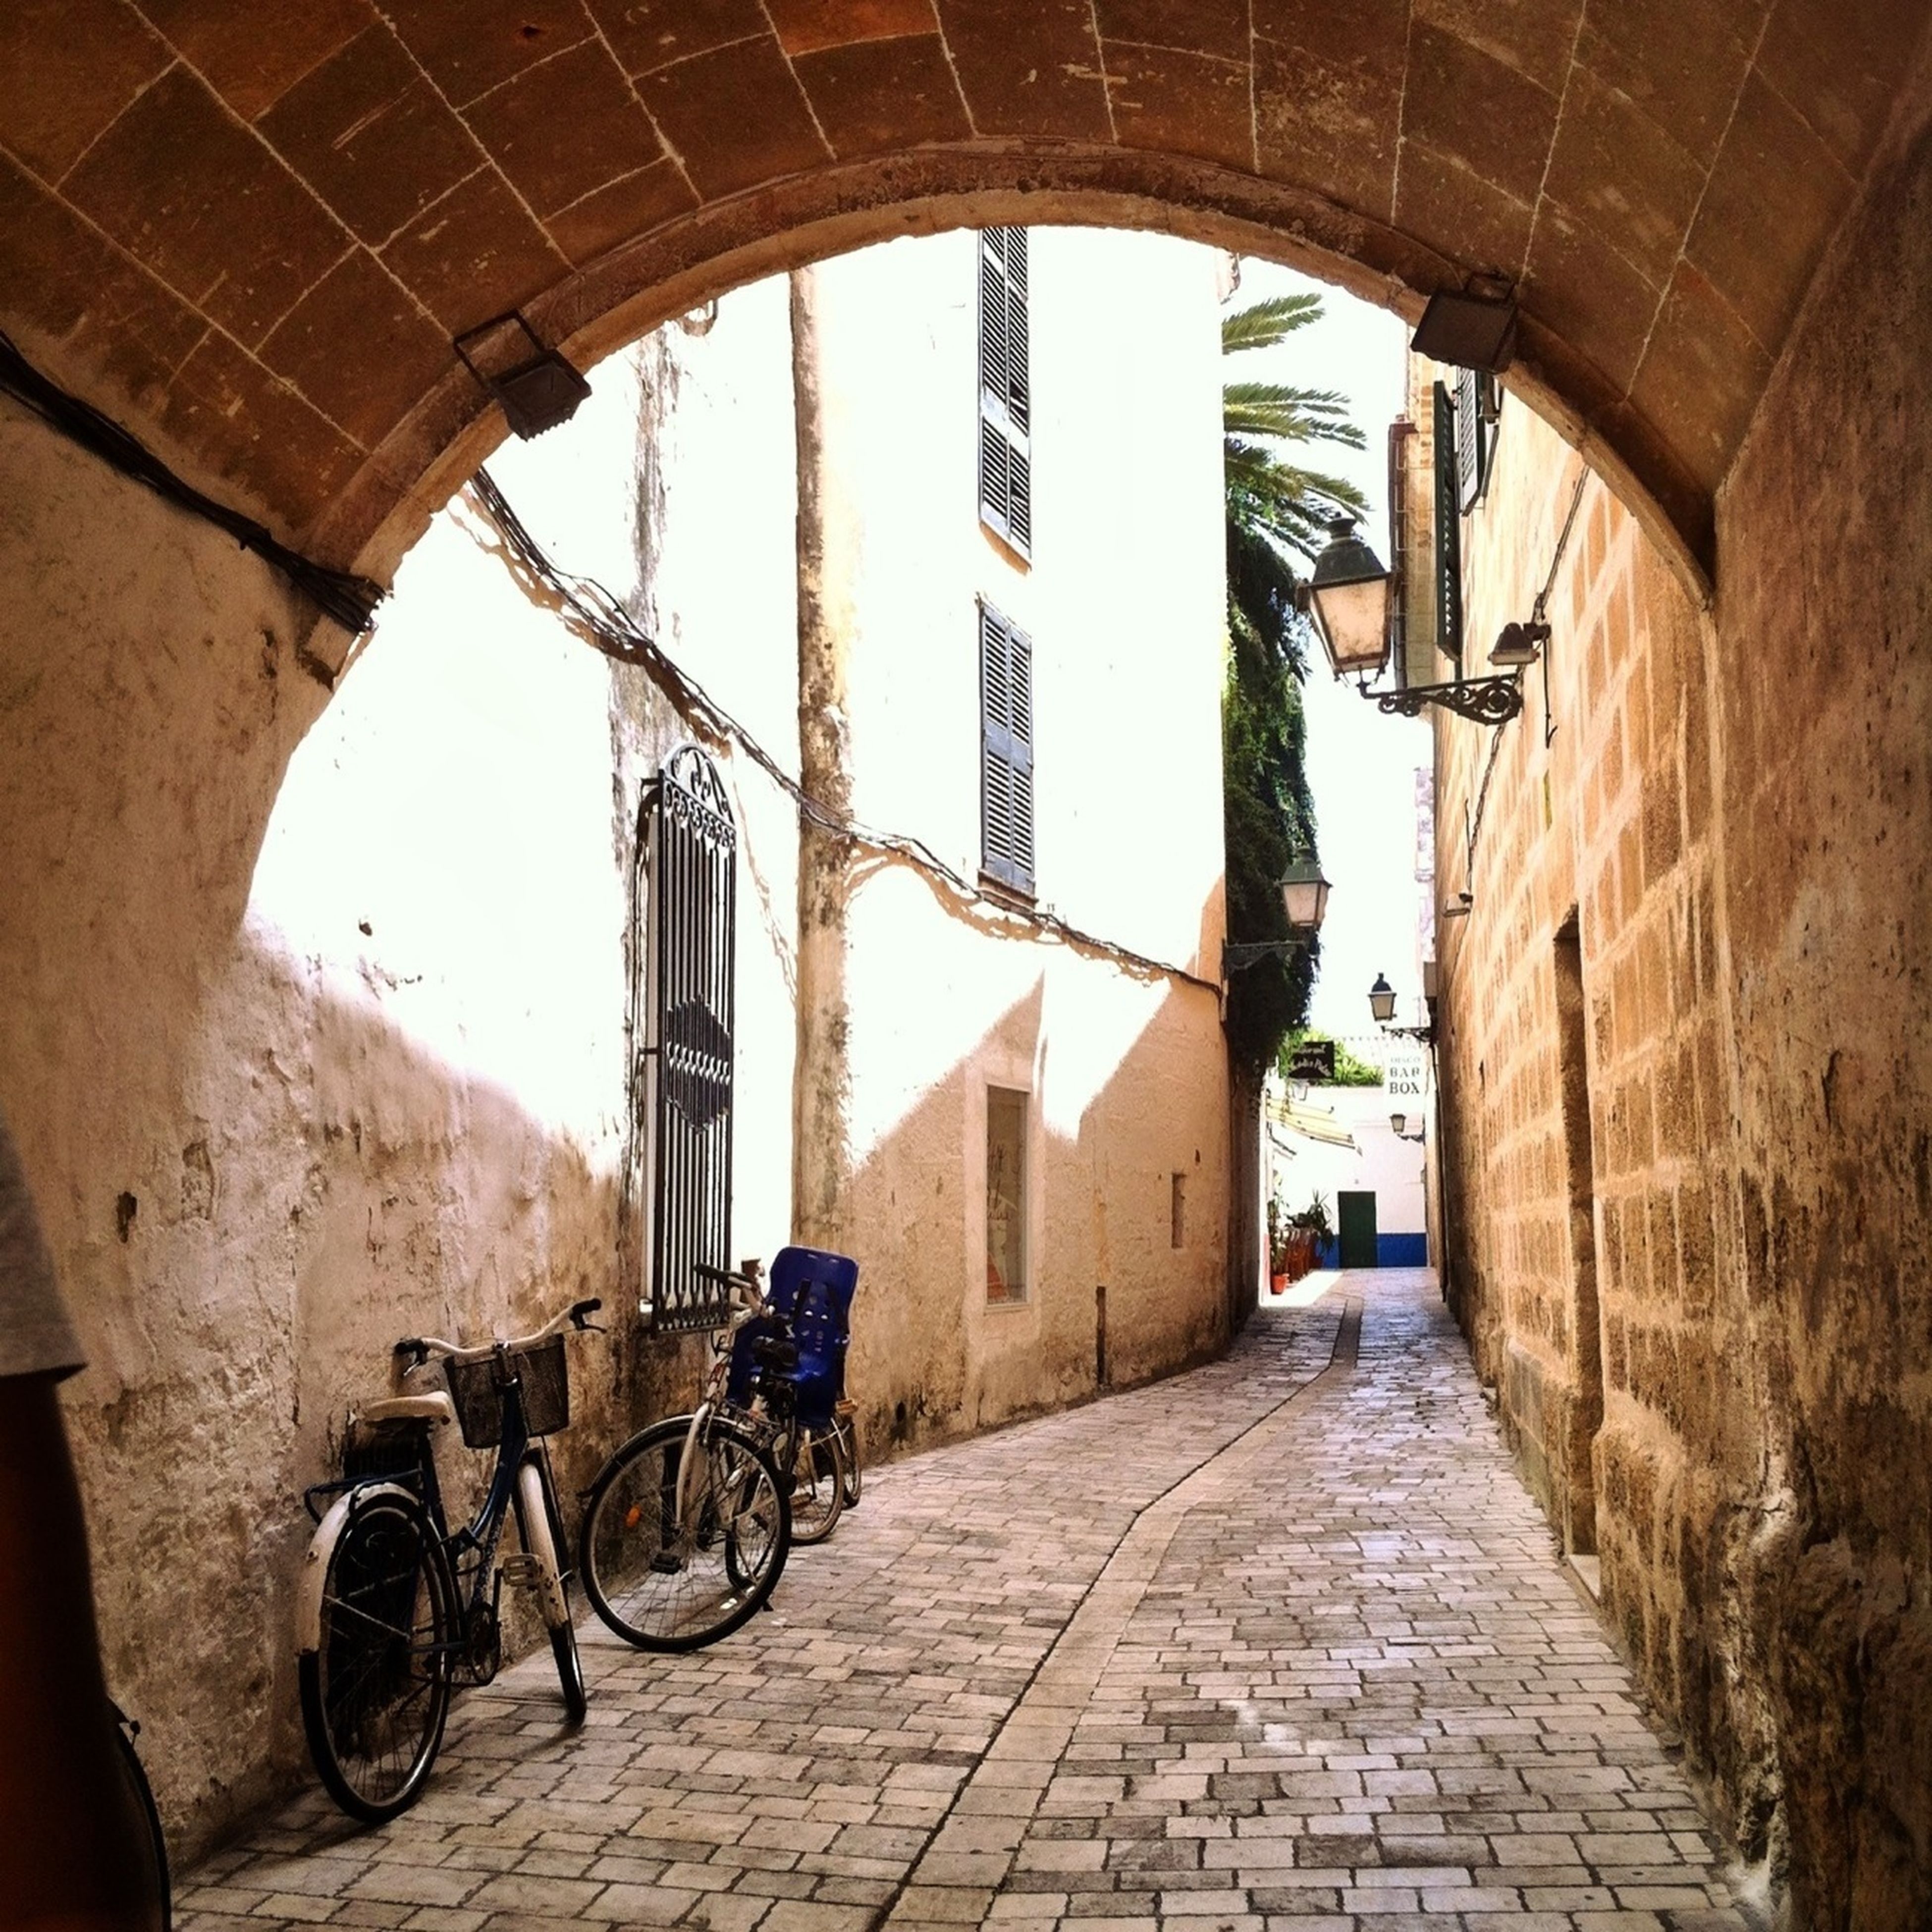 architecture, built structure, building exterior, the way forward, arch, bicycle, cobblestone, alley, street, building, diminishing perspective, narrow, footpath, archway, day, residential building, city, wall - building feature, old town